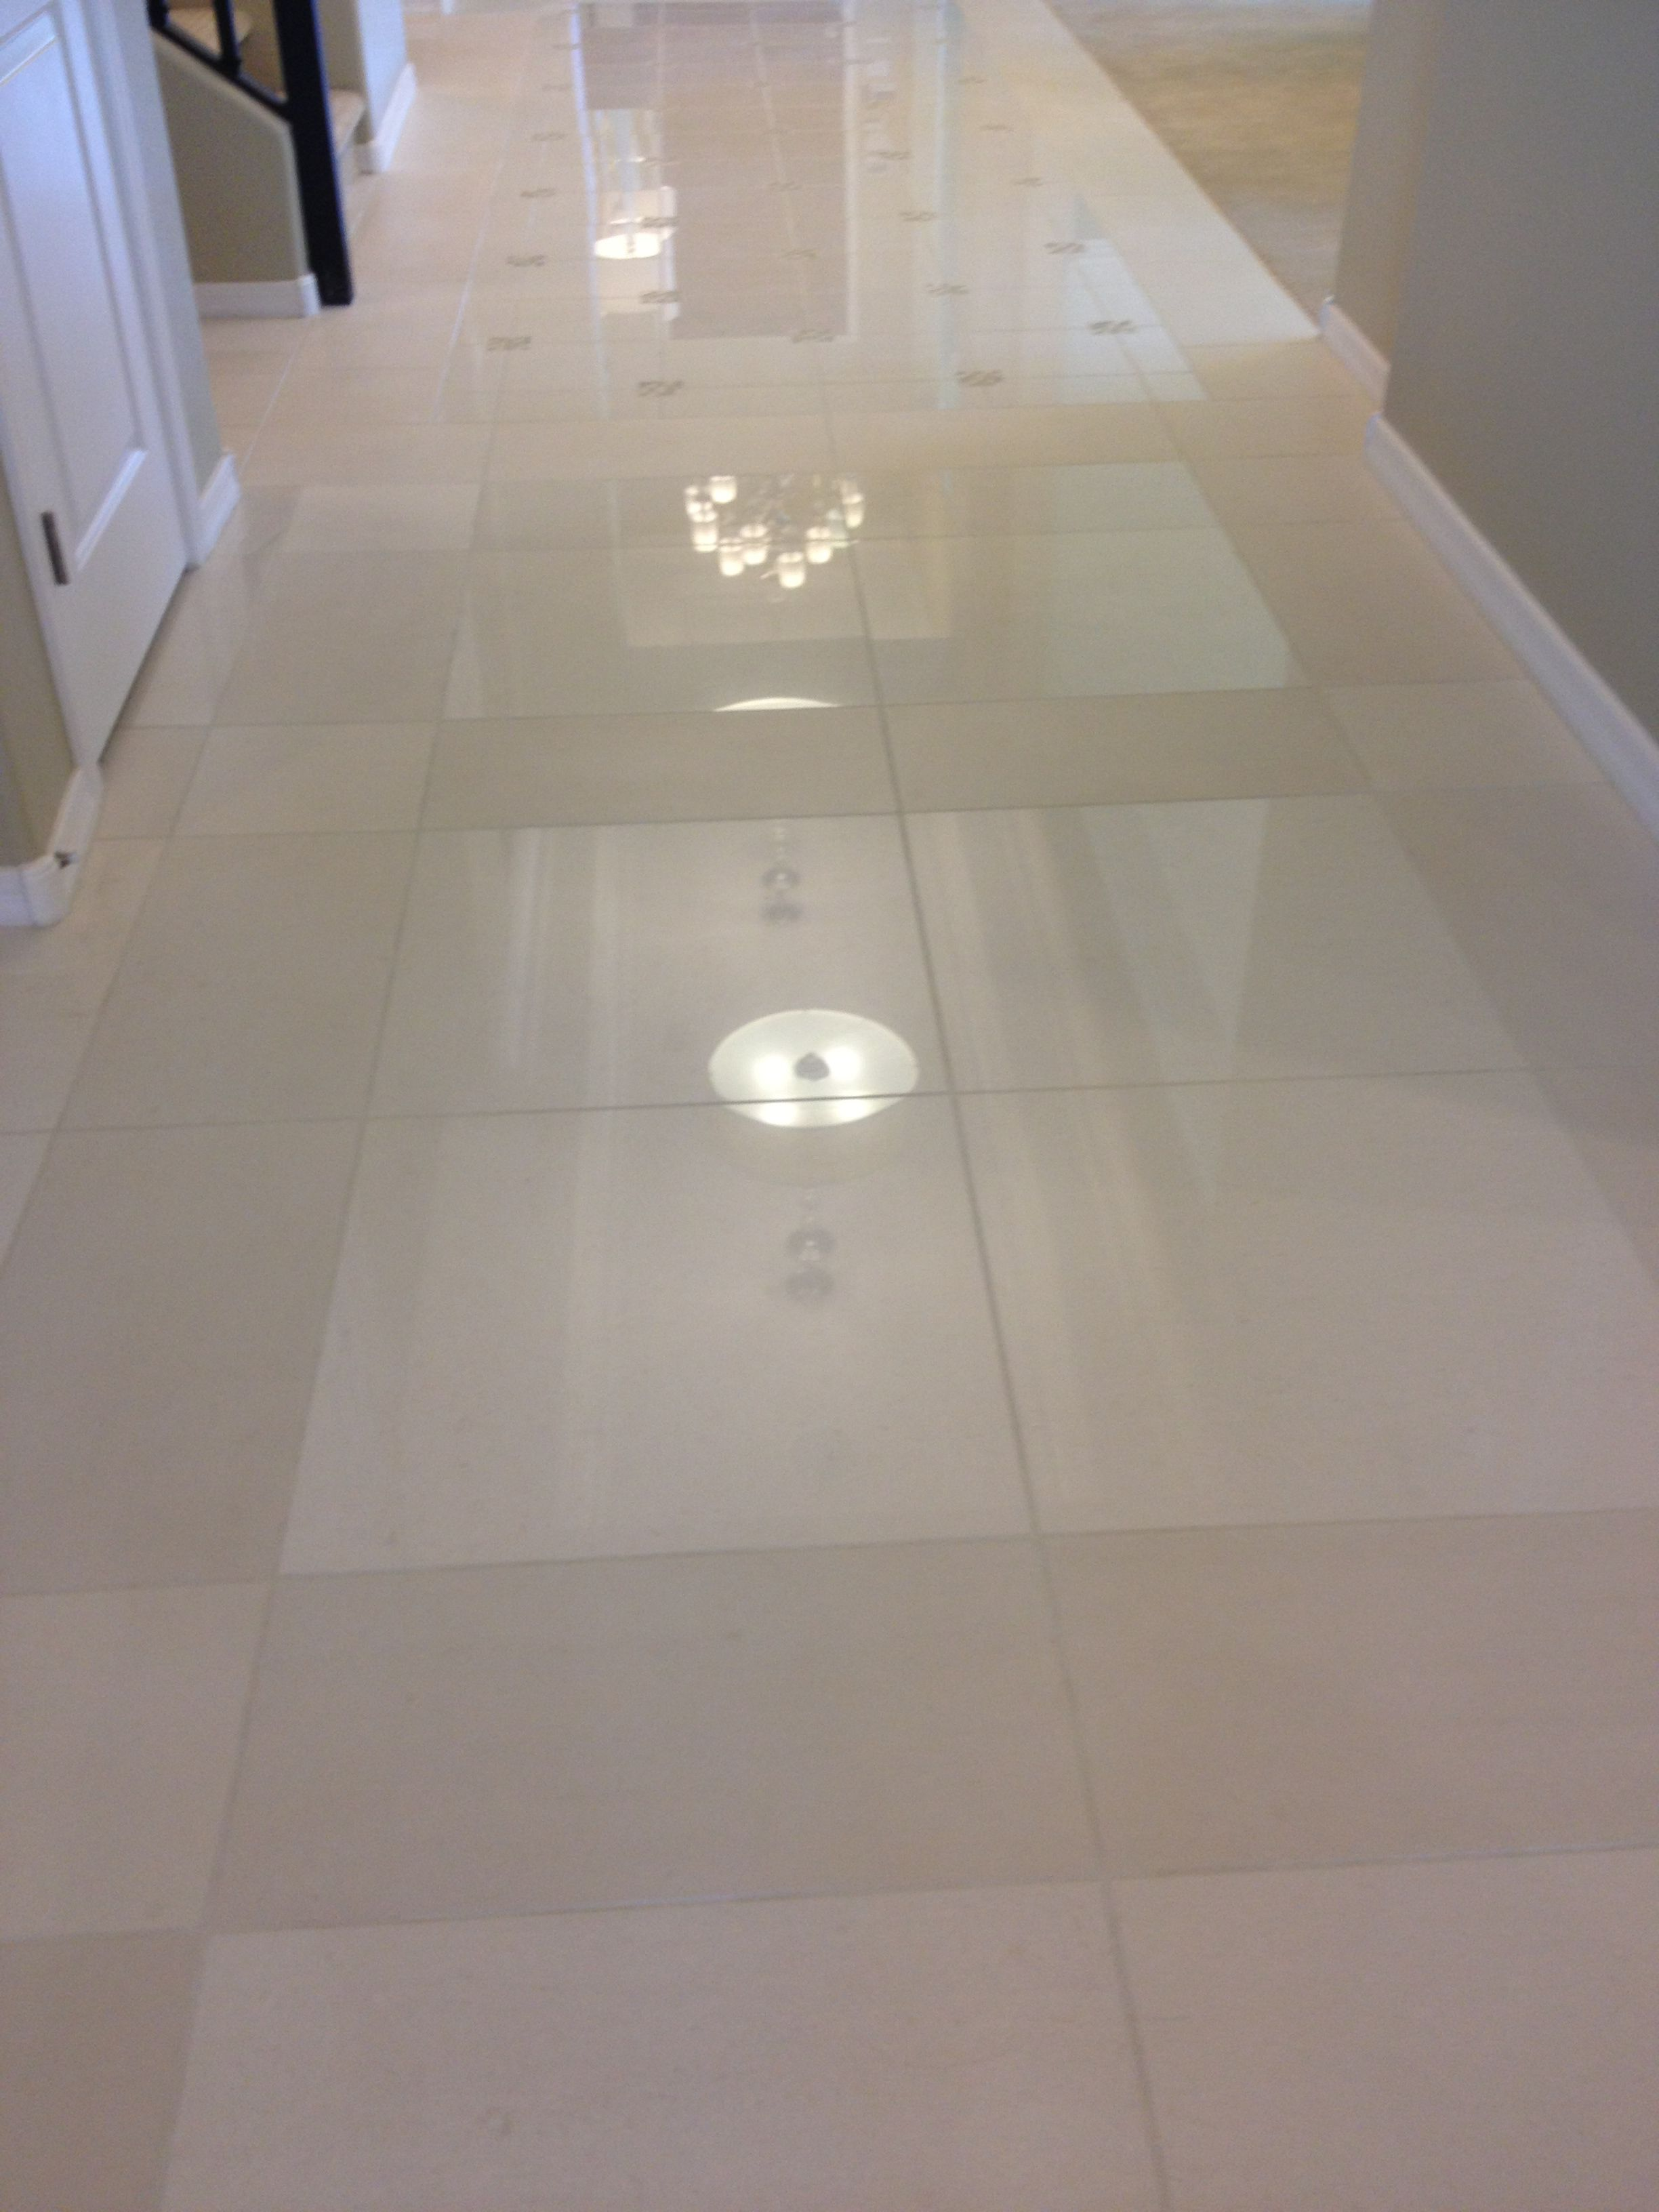 Glossy and matte finished tile flooring contrast dwell glossy and matte finished tile flooring contrast doublecrazyfo Image collections